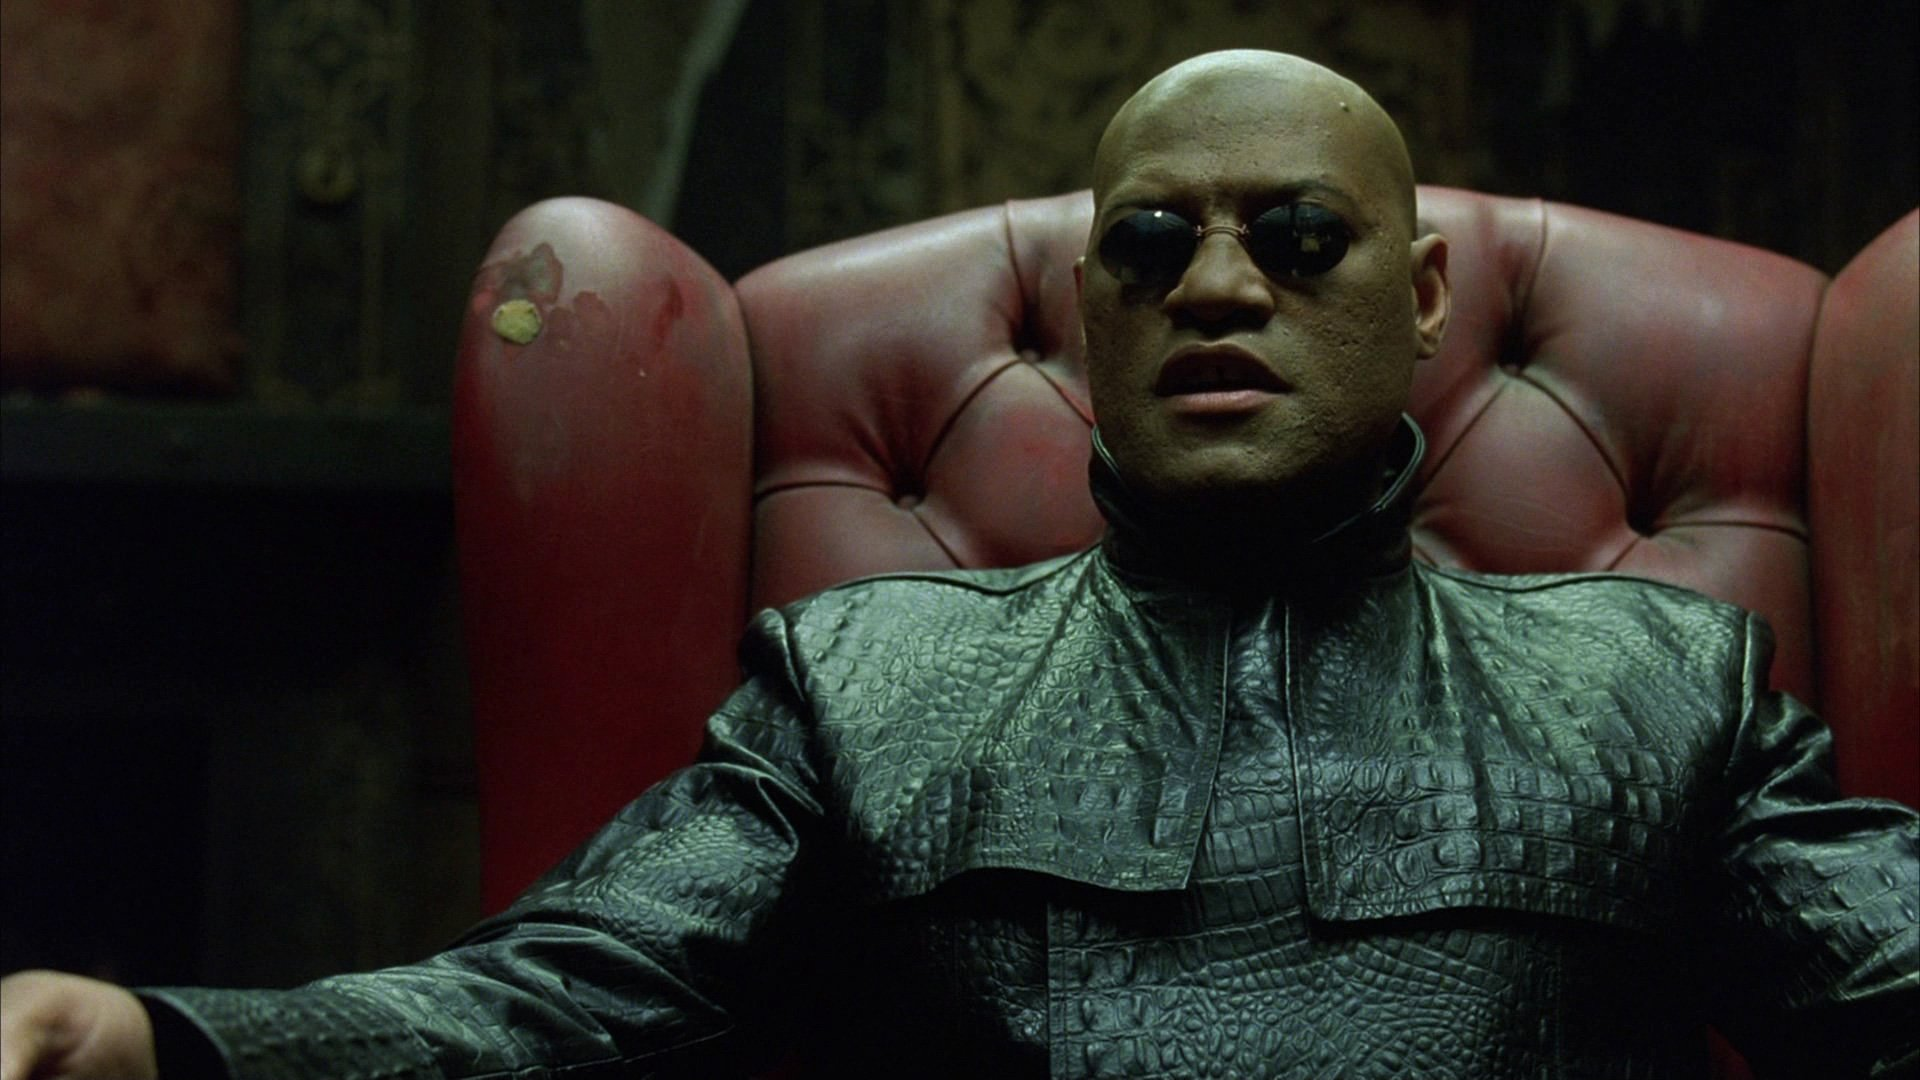 Photo du film Matrix avec Morpheus (Laurence Fishburne)